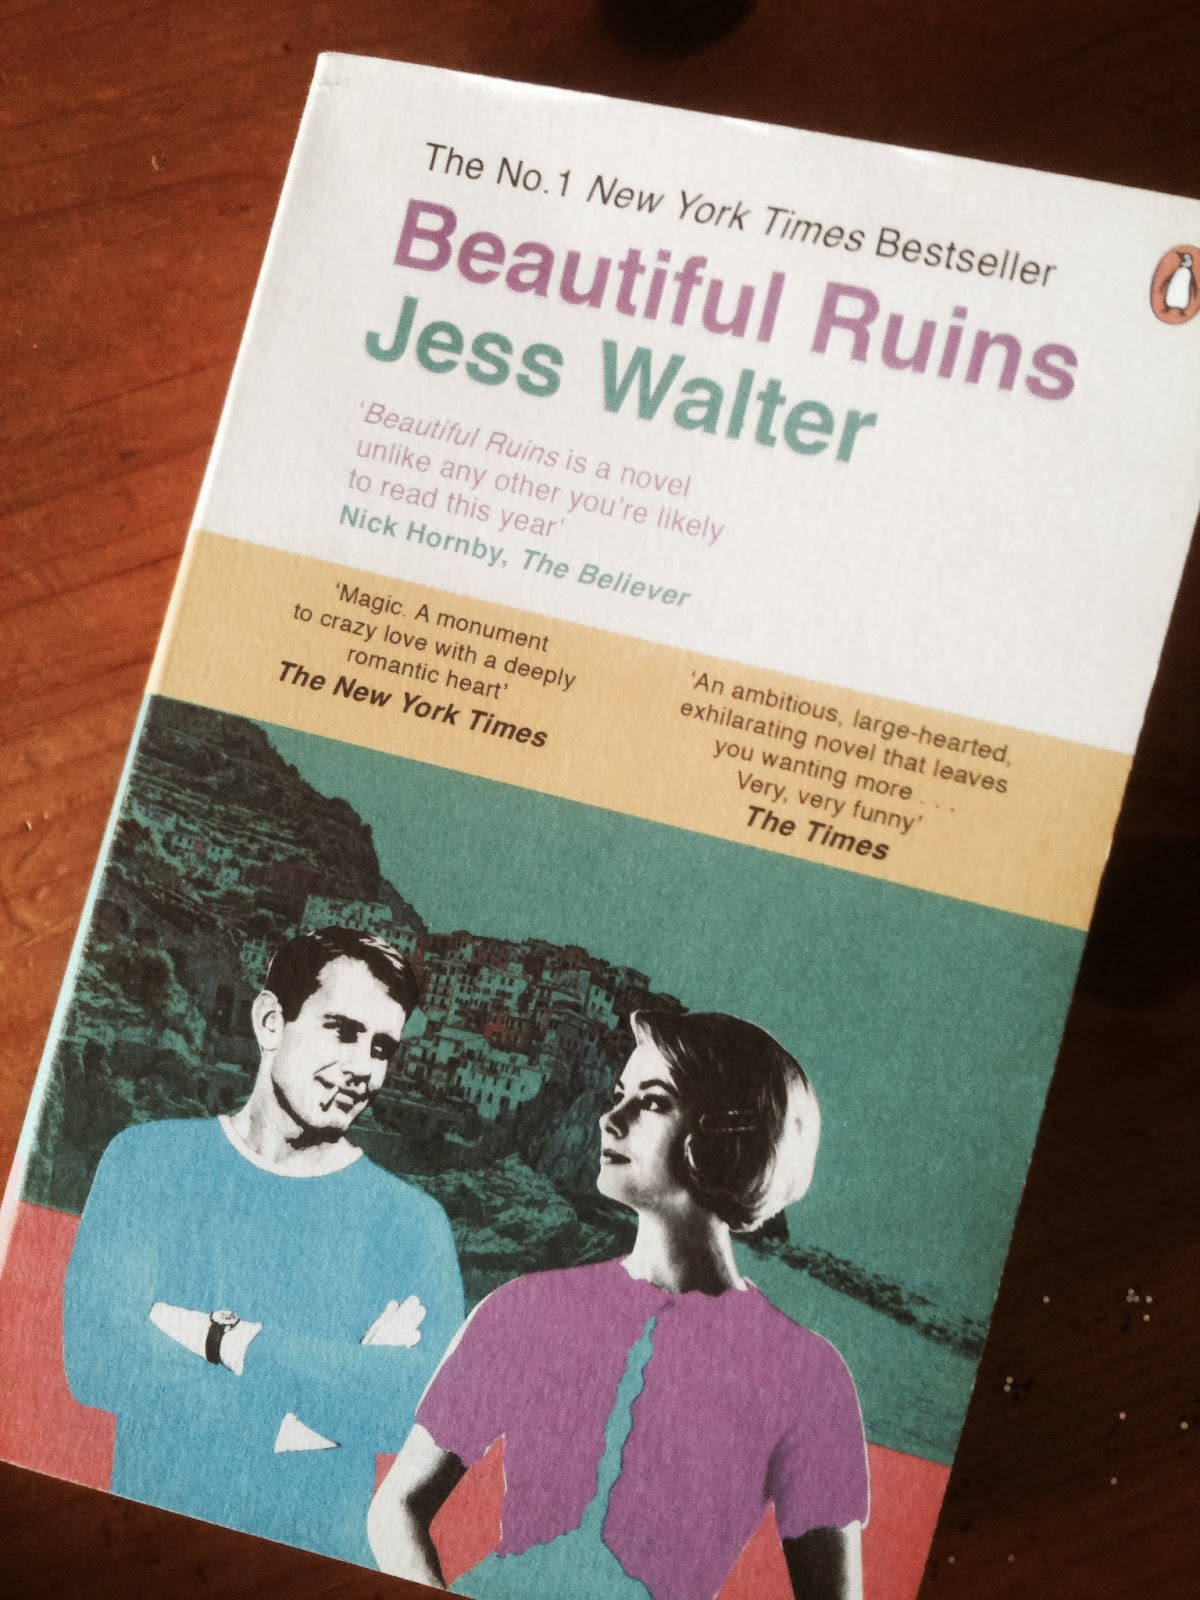 Beautiful Ruins book by Jess Walter